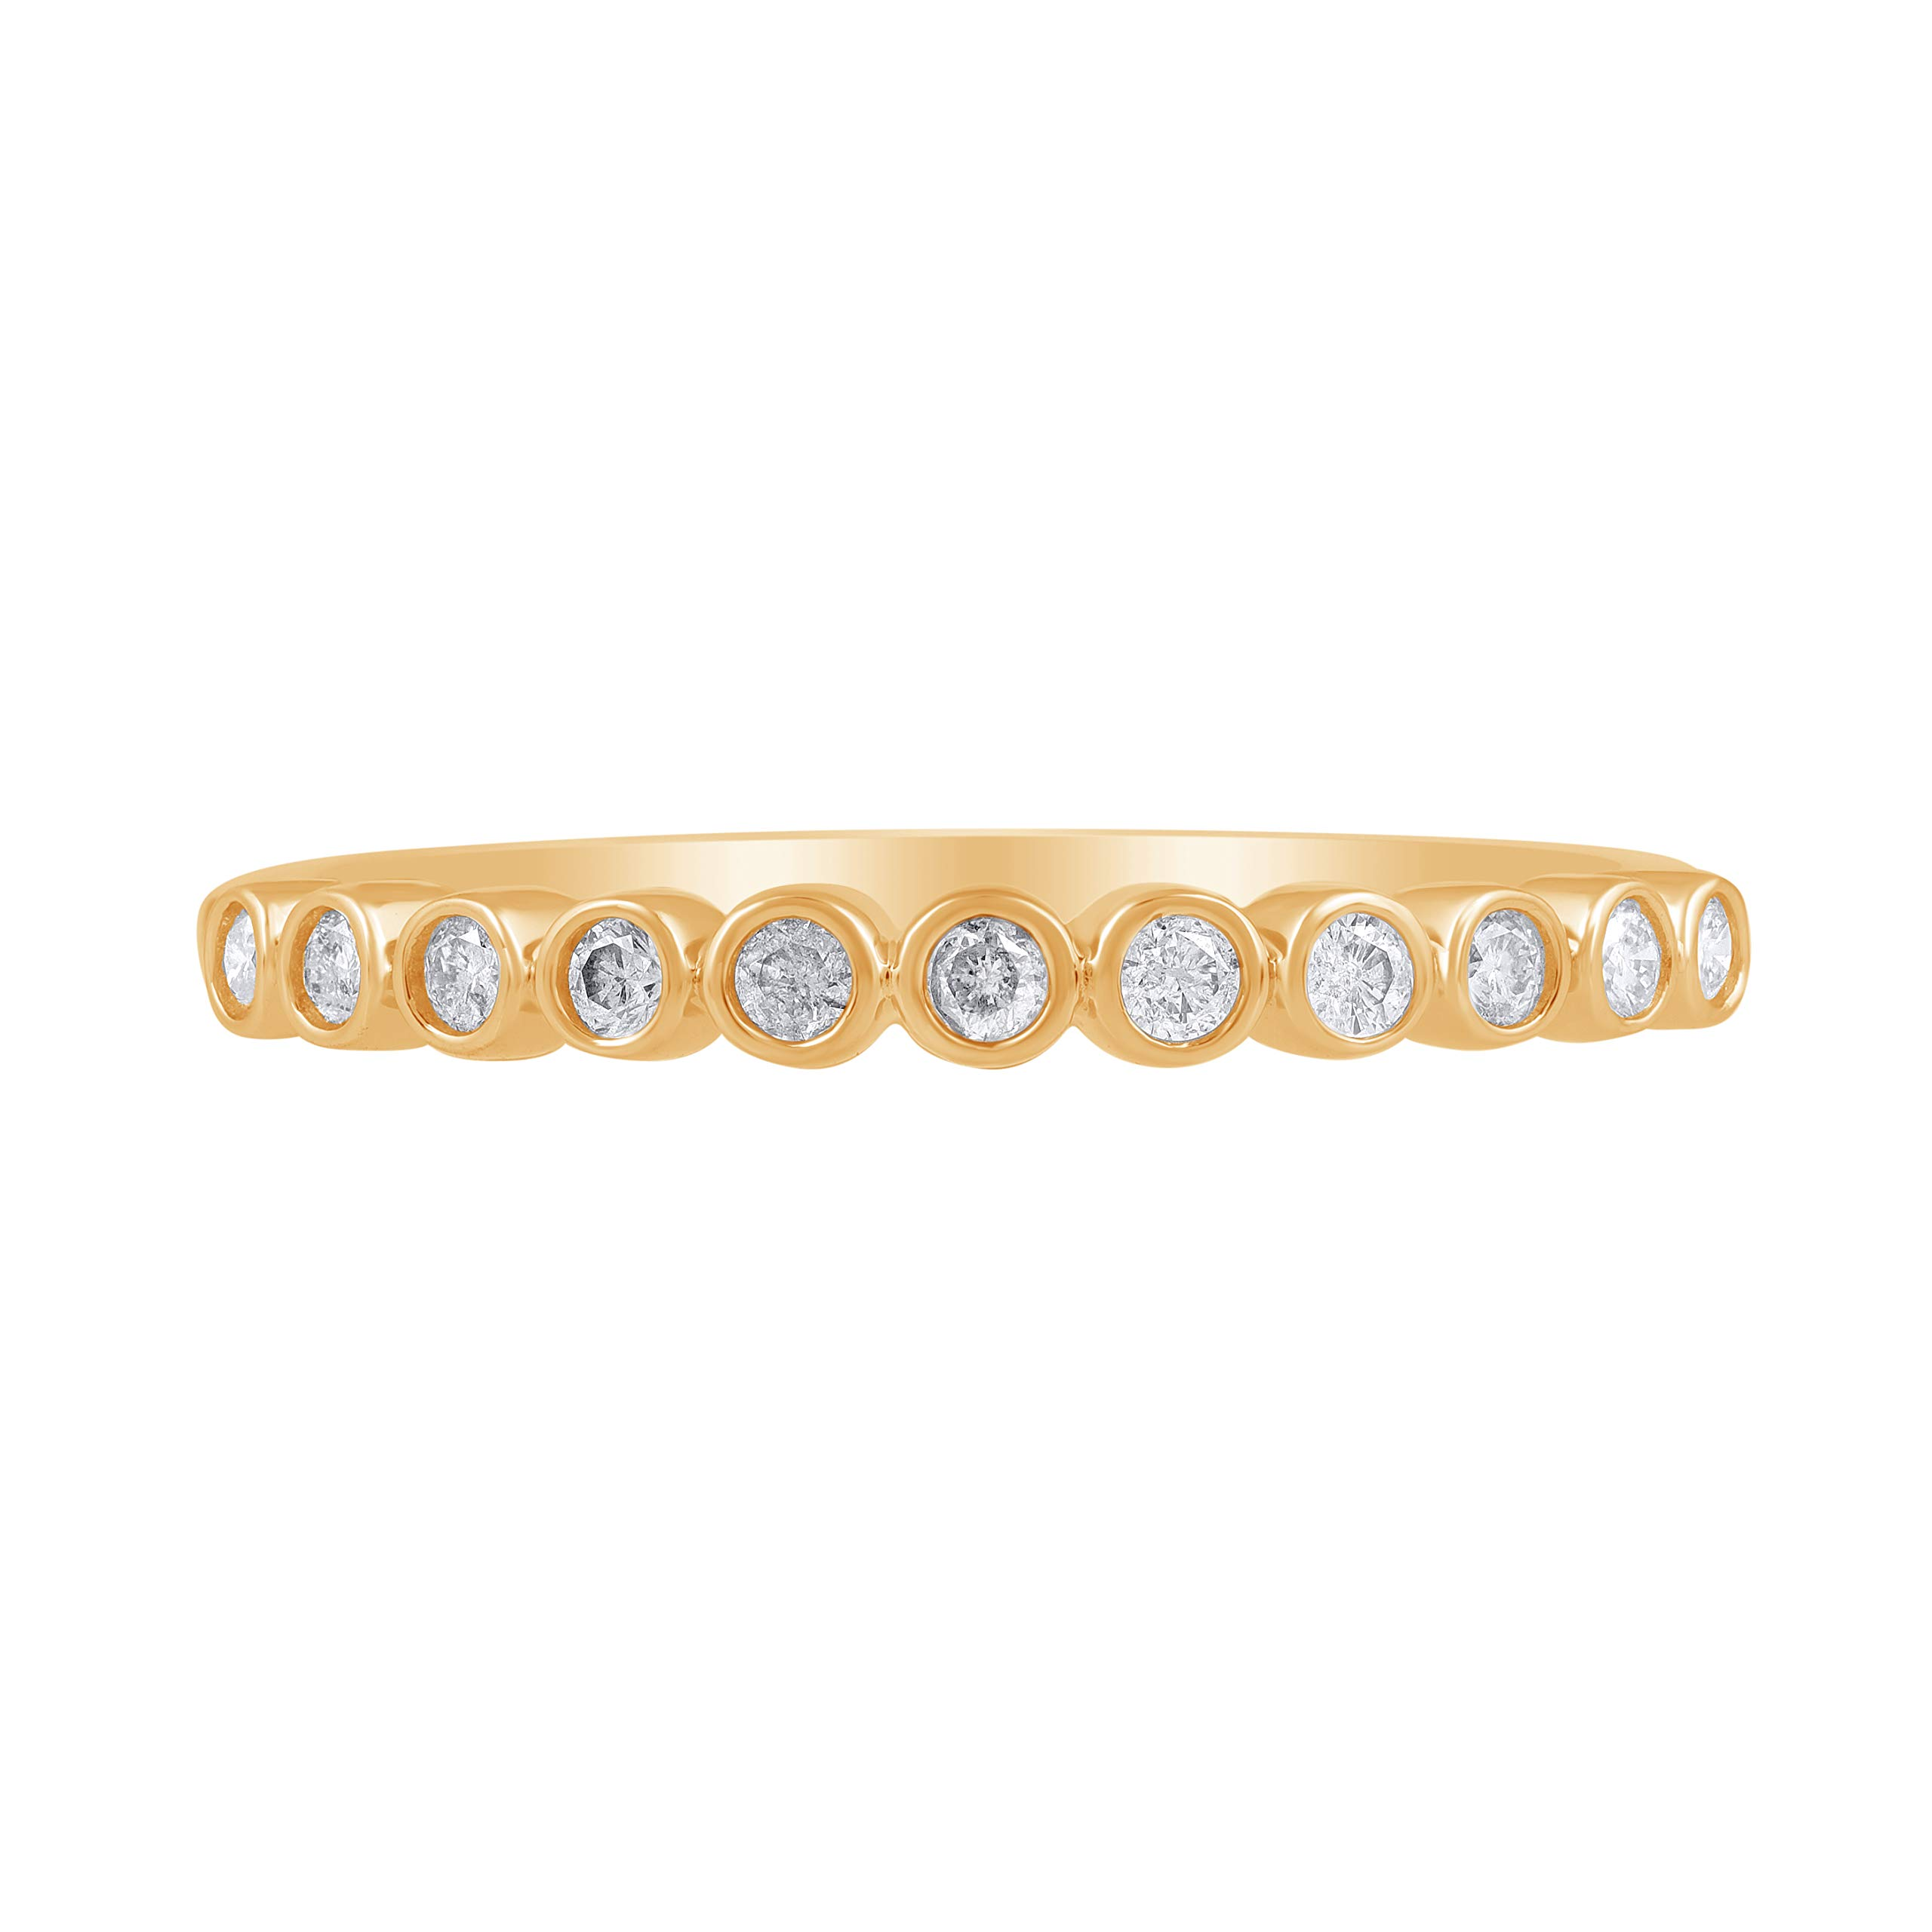 1/5 Carat Natural Diamond Stackable Band 14K Yellow Gold (H-I Color, I2 Clarity) Diamond Band for Women Diamond Jewelry Gifts for Women, US Size 8 by TJD